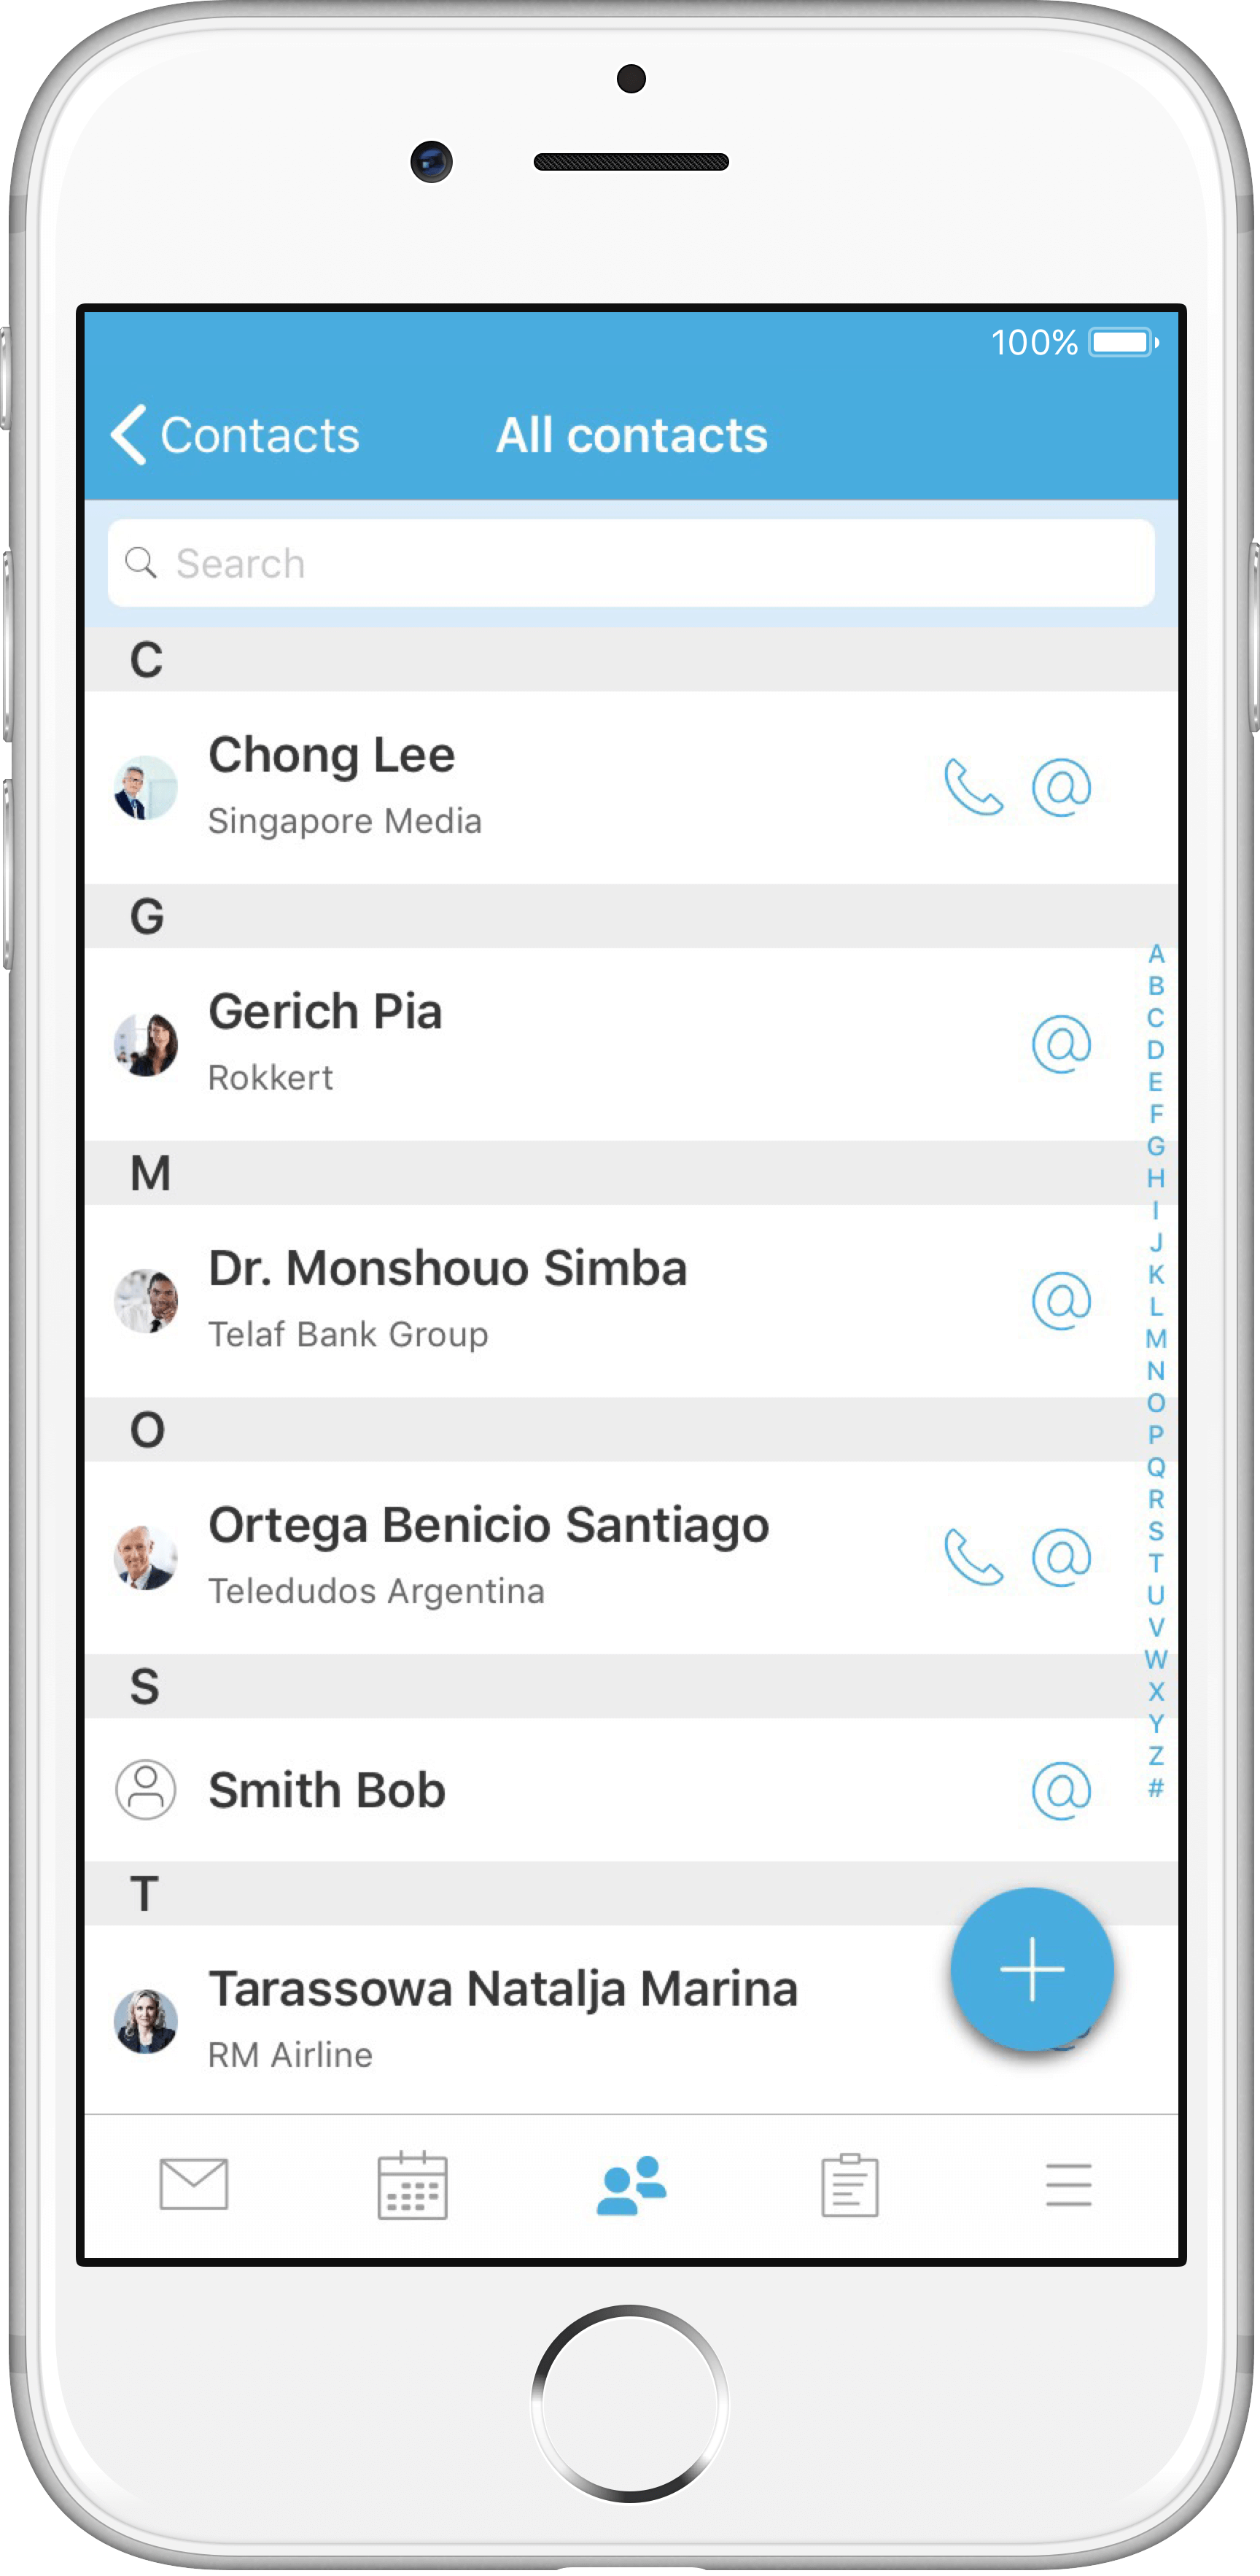 Easily create new contacts via the floating button